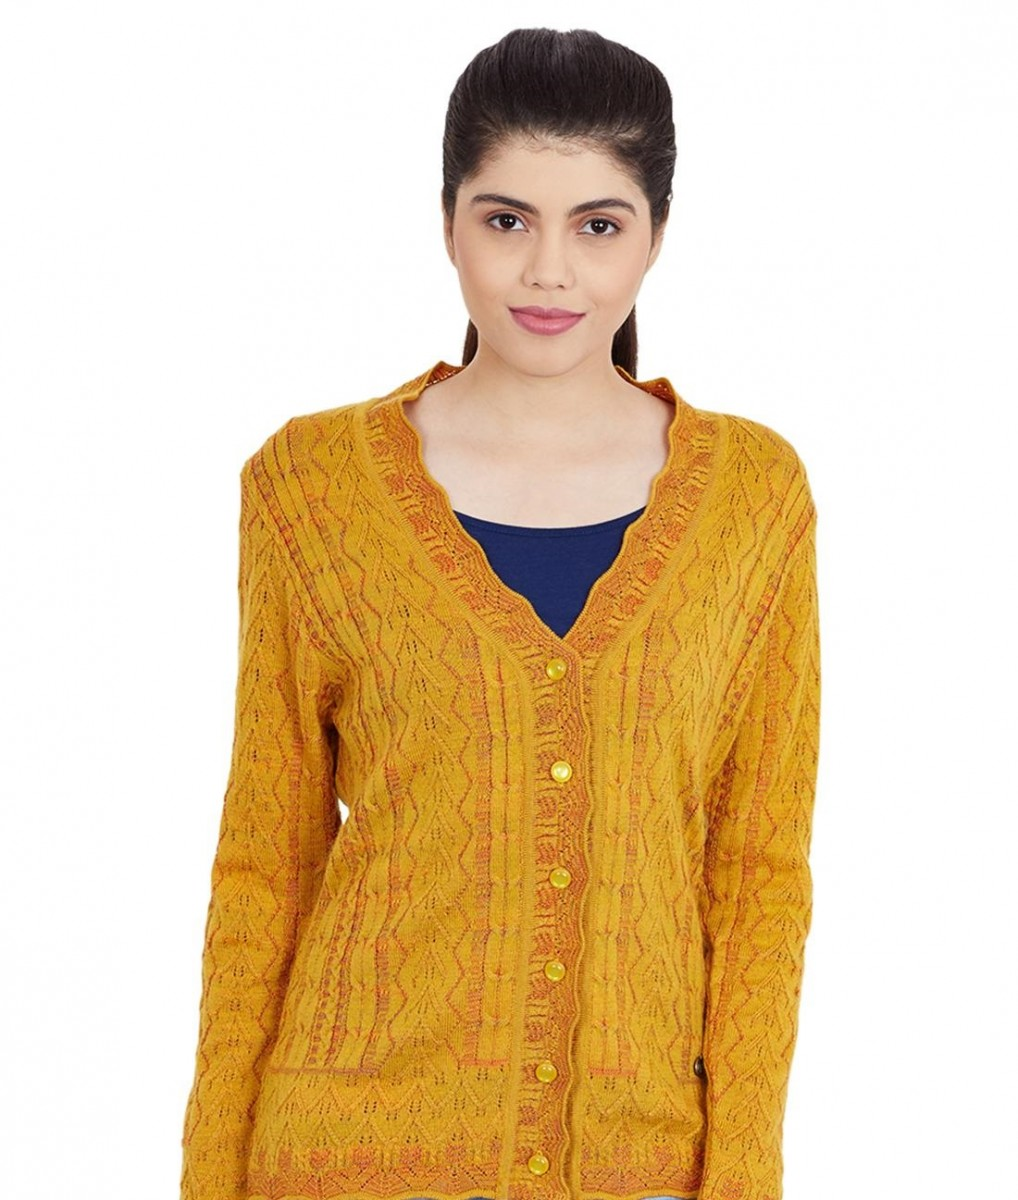 Monte Carlo mustard colored v neck cardigan with self design